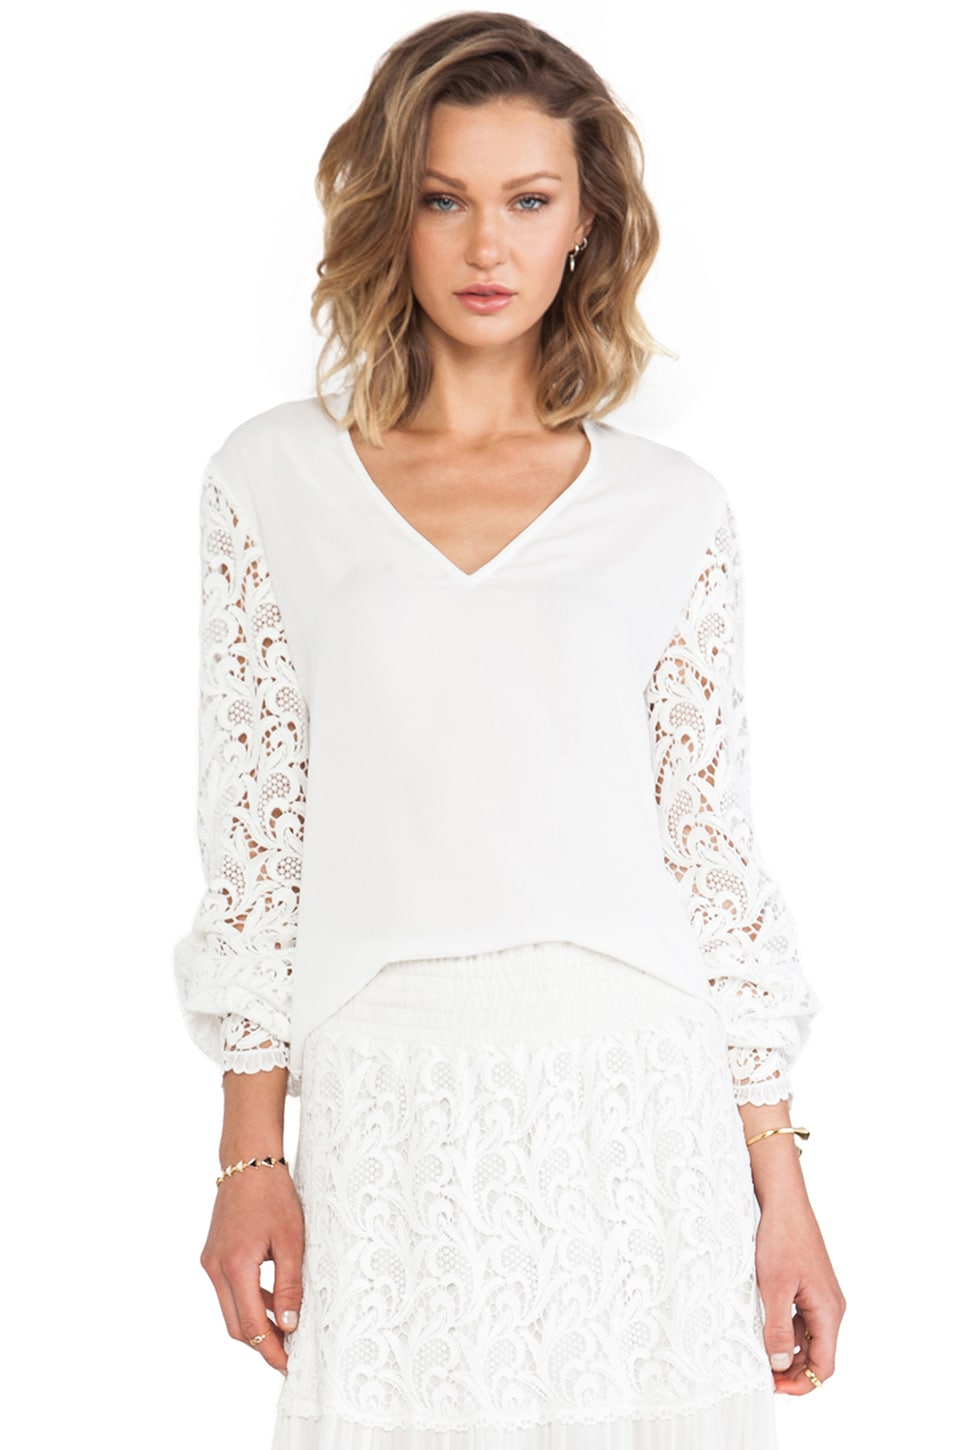 Alexis Dunn V Neck Crocheted Sleeve Top in White Crochet